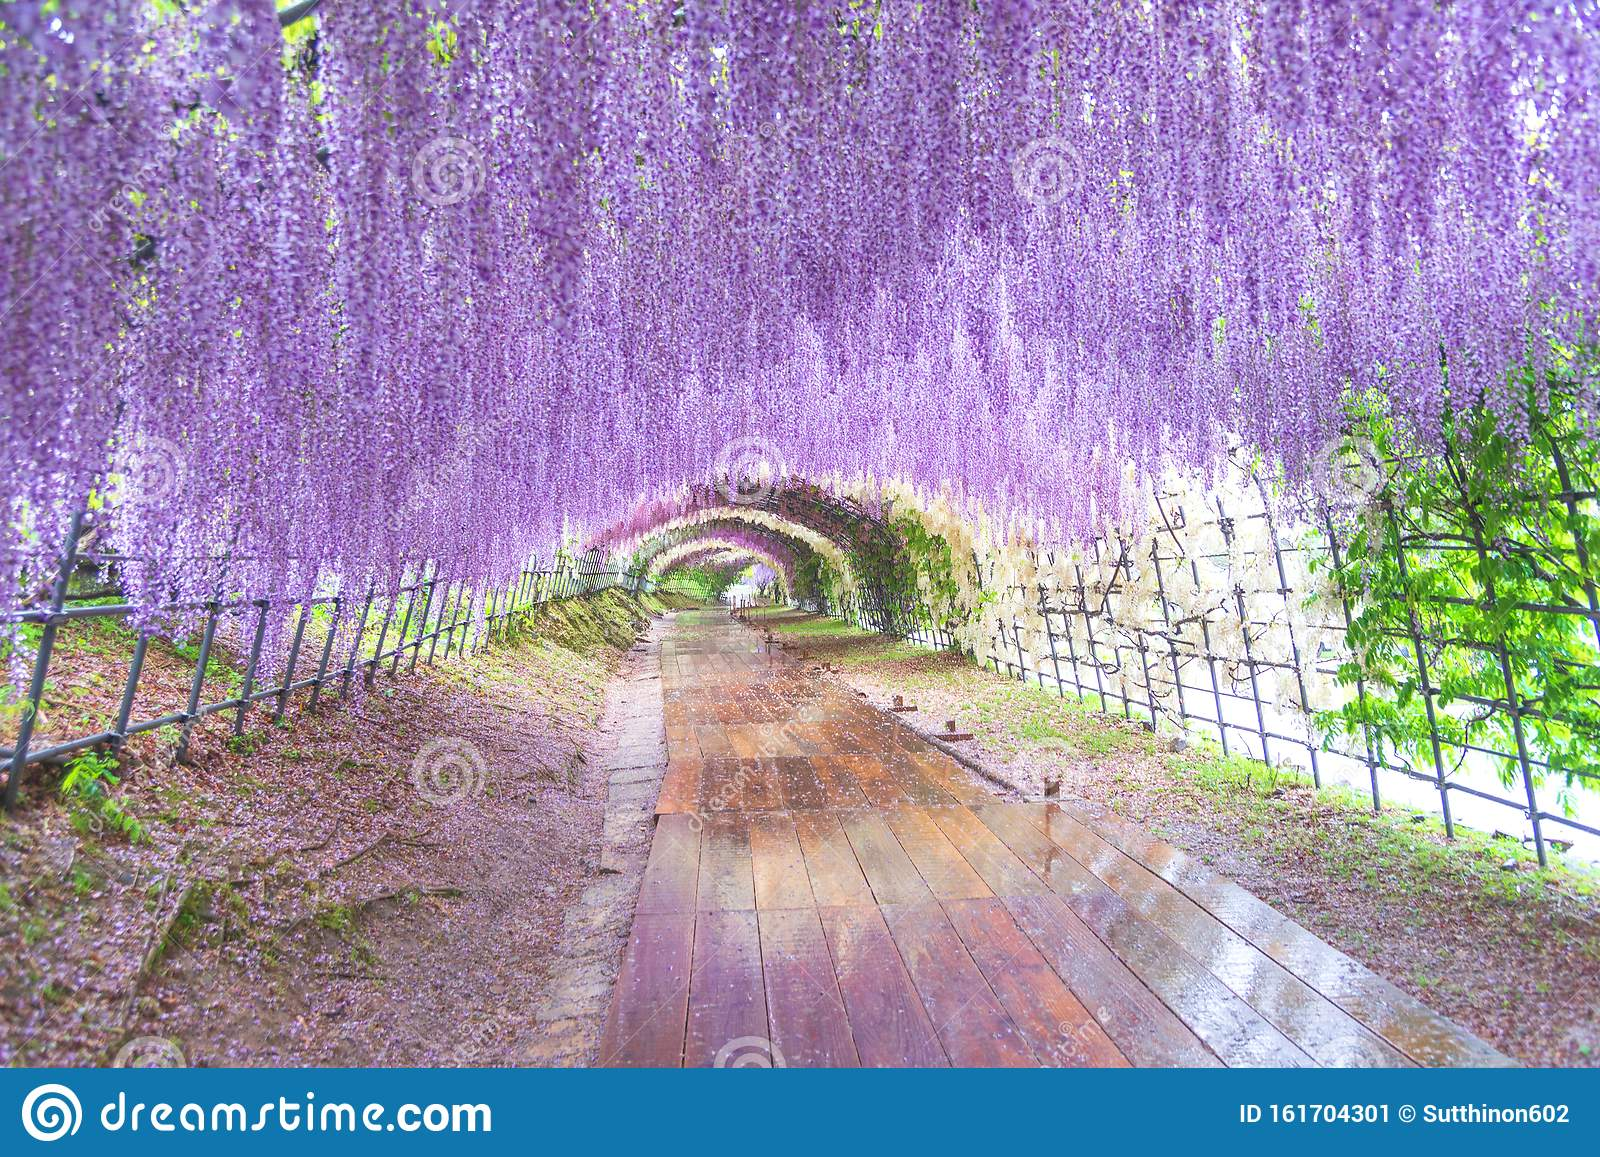 The Great Wisteria Flower Arch Wisteria Tunnel At Kawachi Fuji